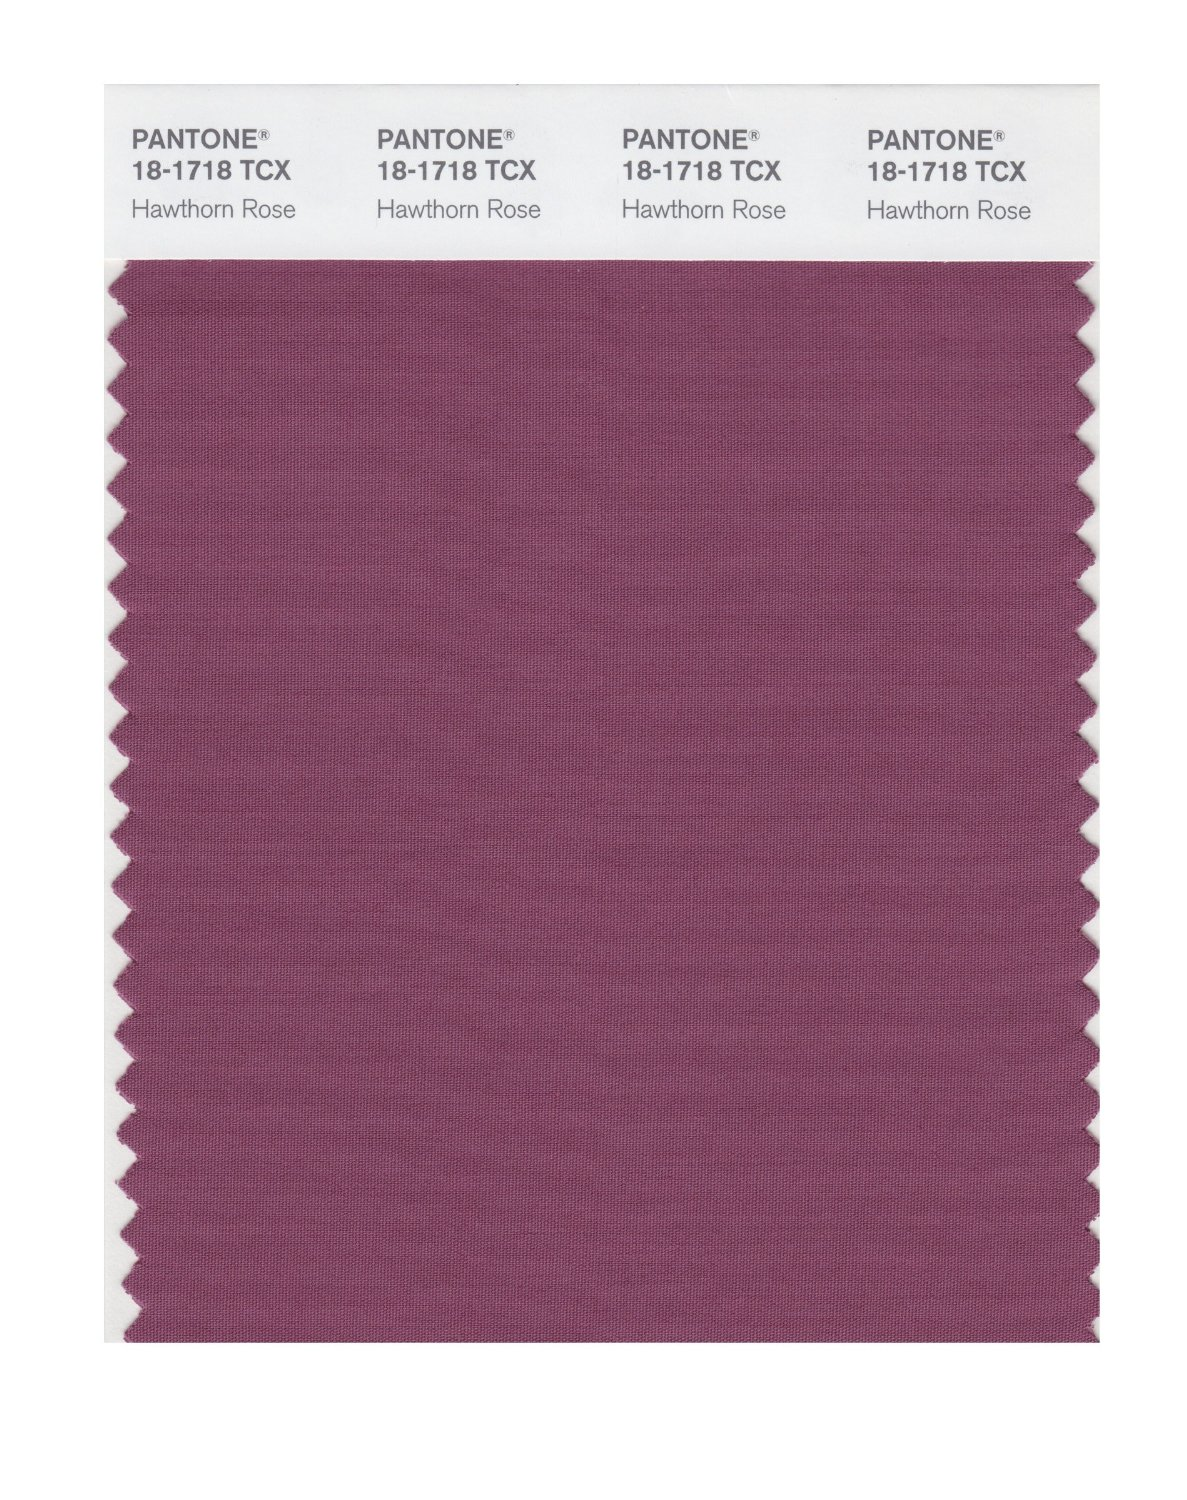 Pantone Smart Swatch 18-1718 Hawthorn Rose